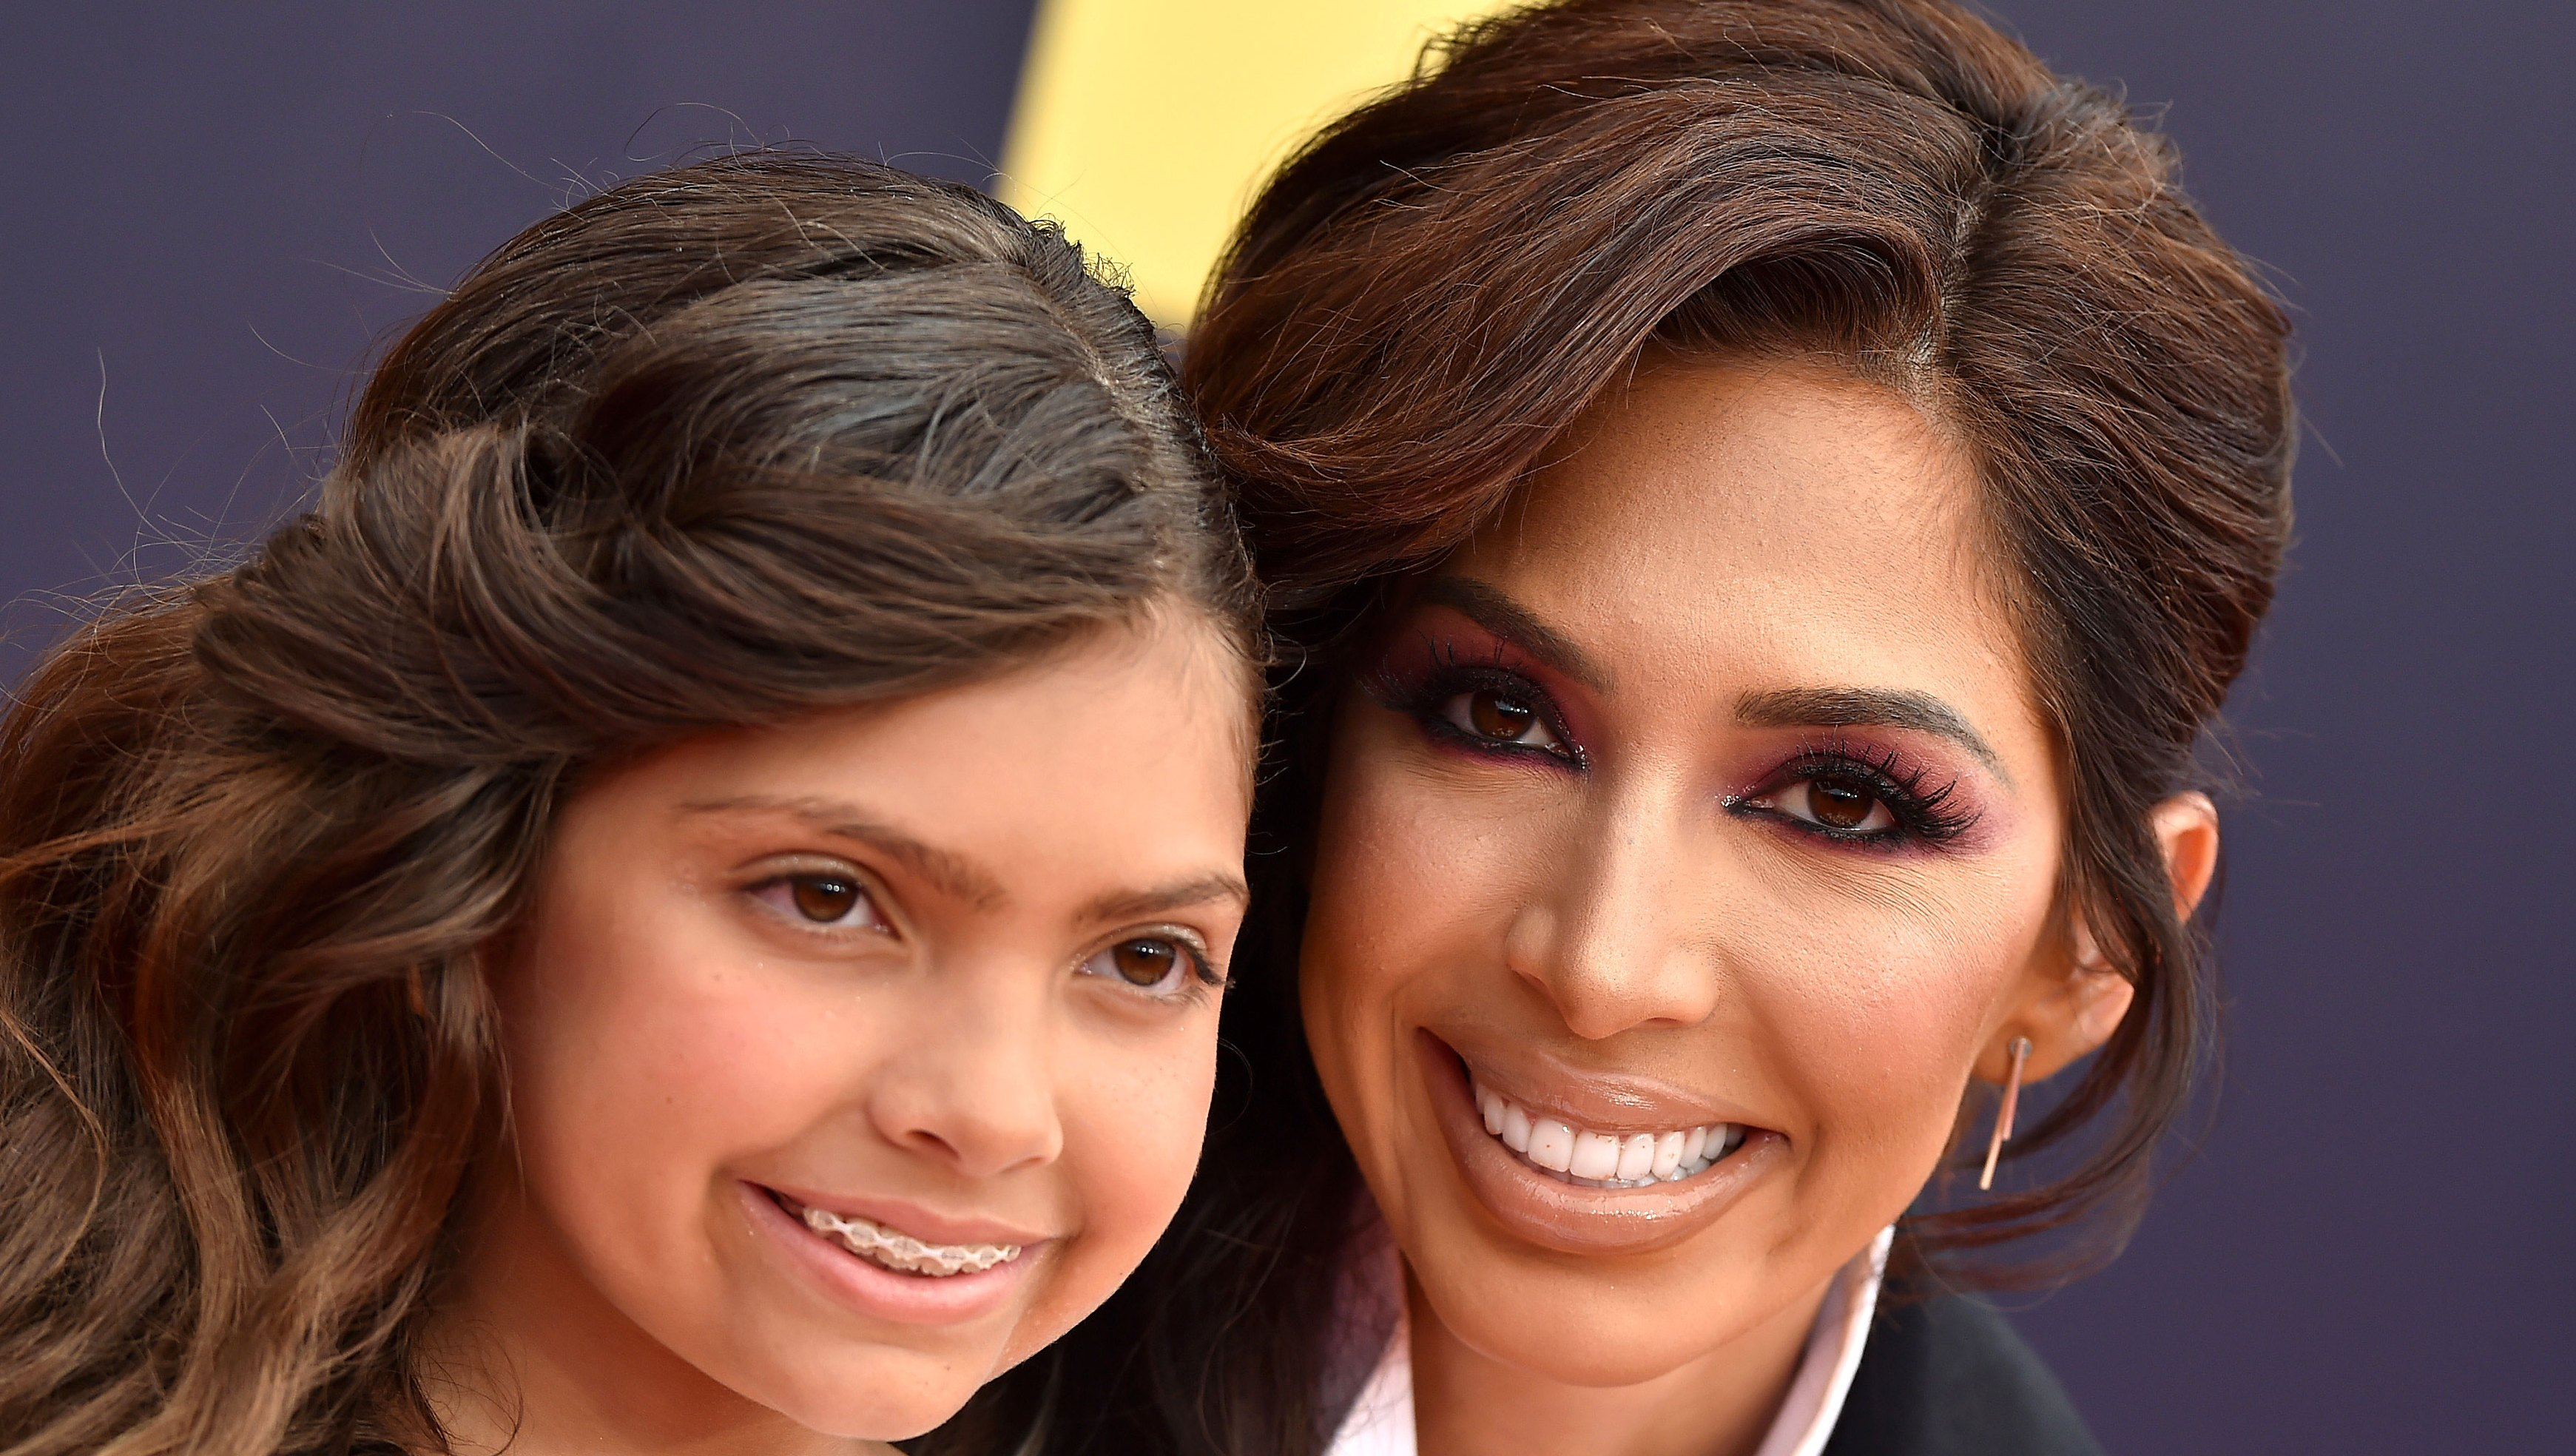 Farrah Abraham Defends Herself After Posting a Video of Daughter Sophia, 9, Dancing in Her Underwear